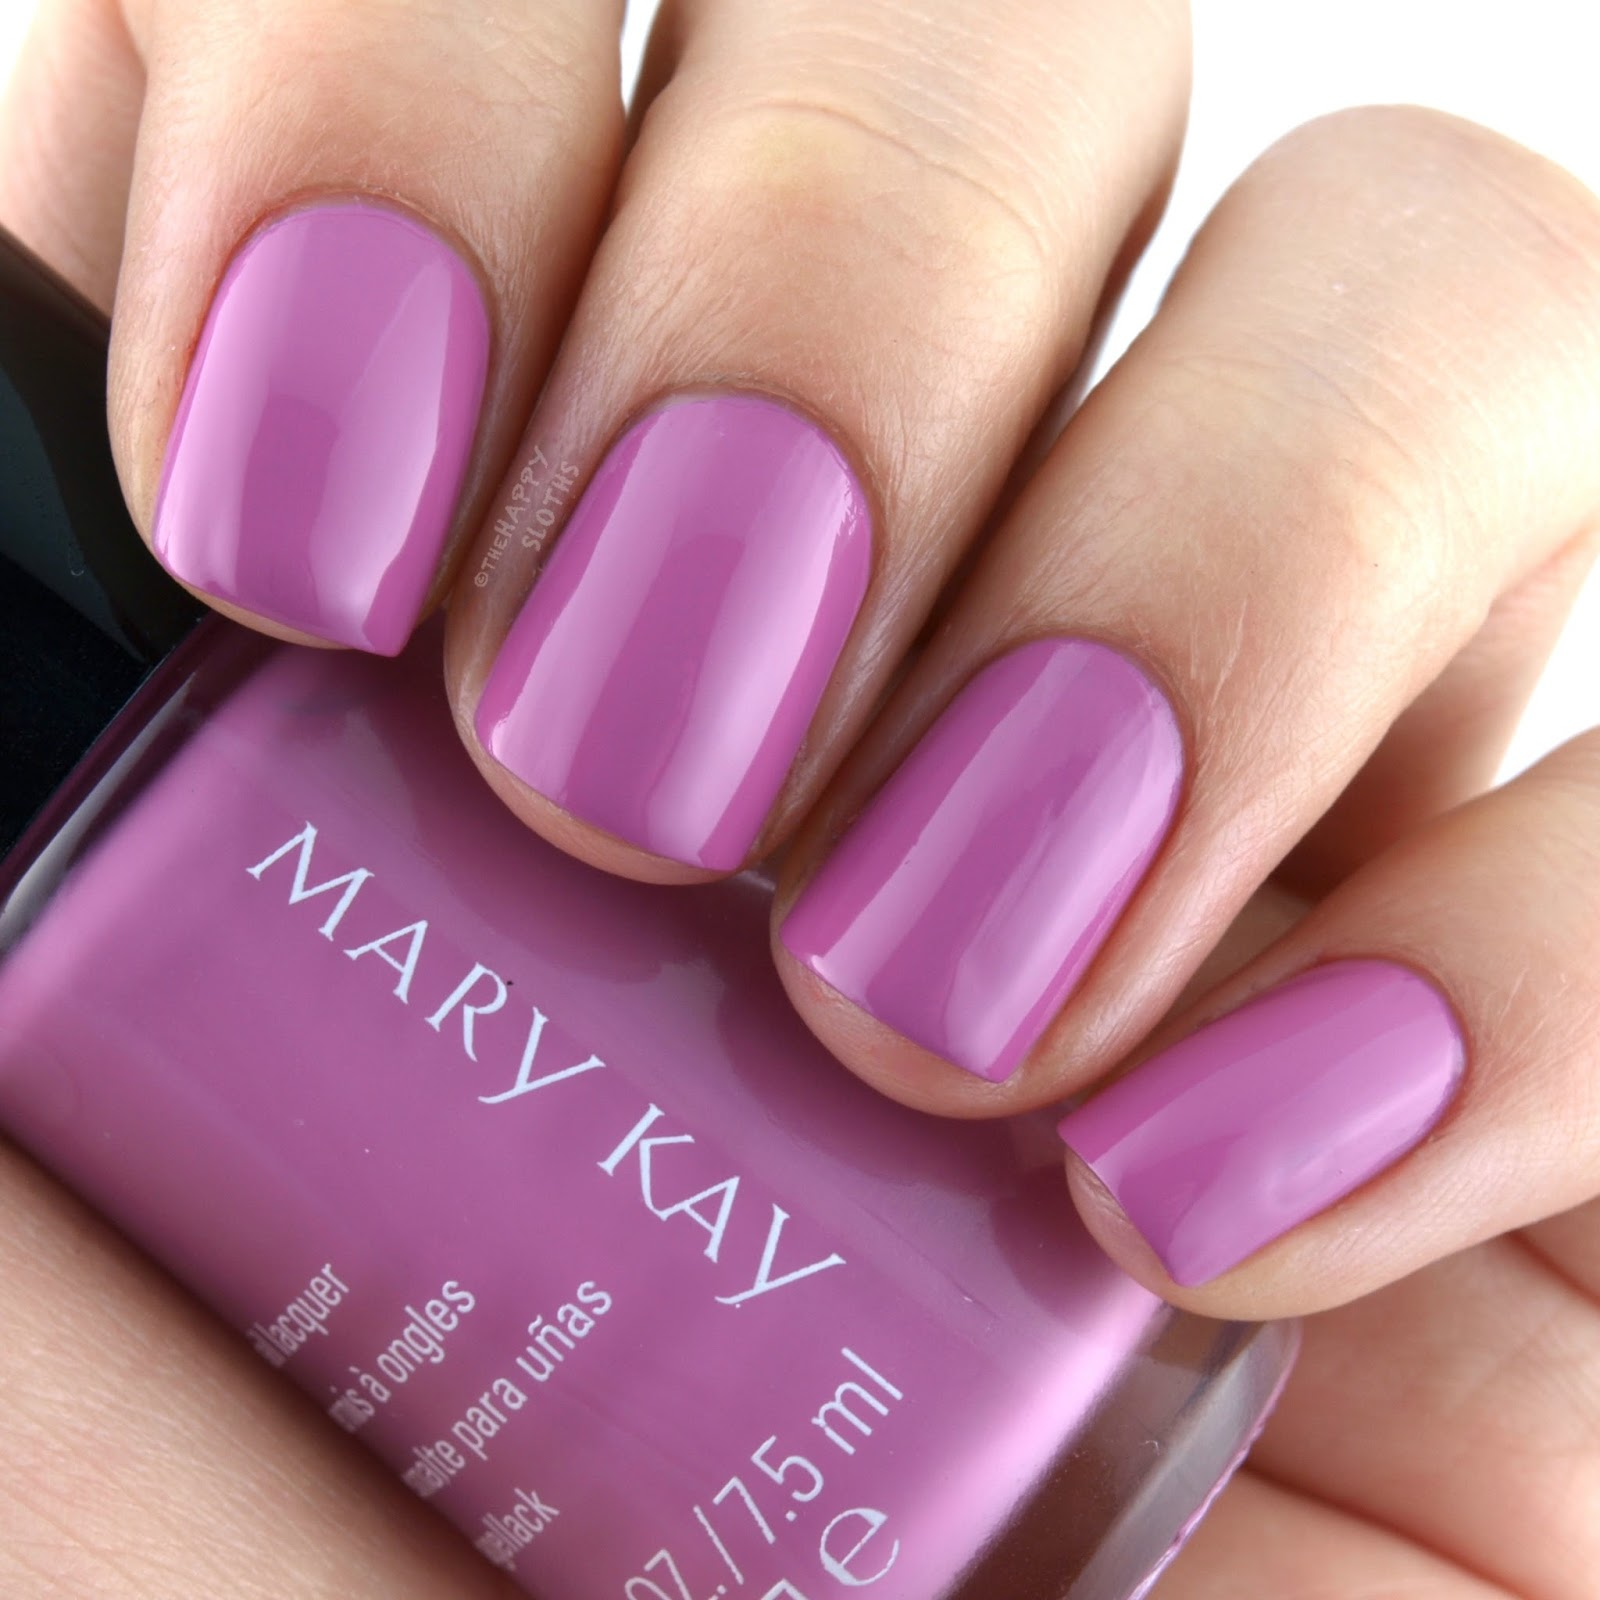 Mary Kay Spring 2017 Light, Reinvented Collection Nail Lacquer Brilliant Violet: Review and Swatches